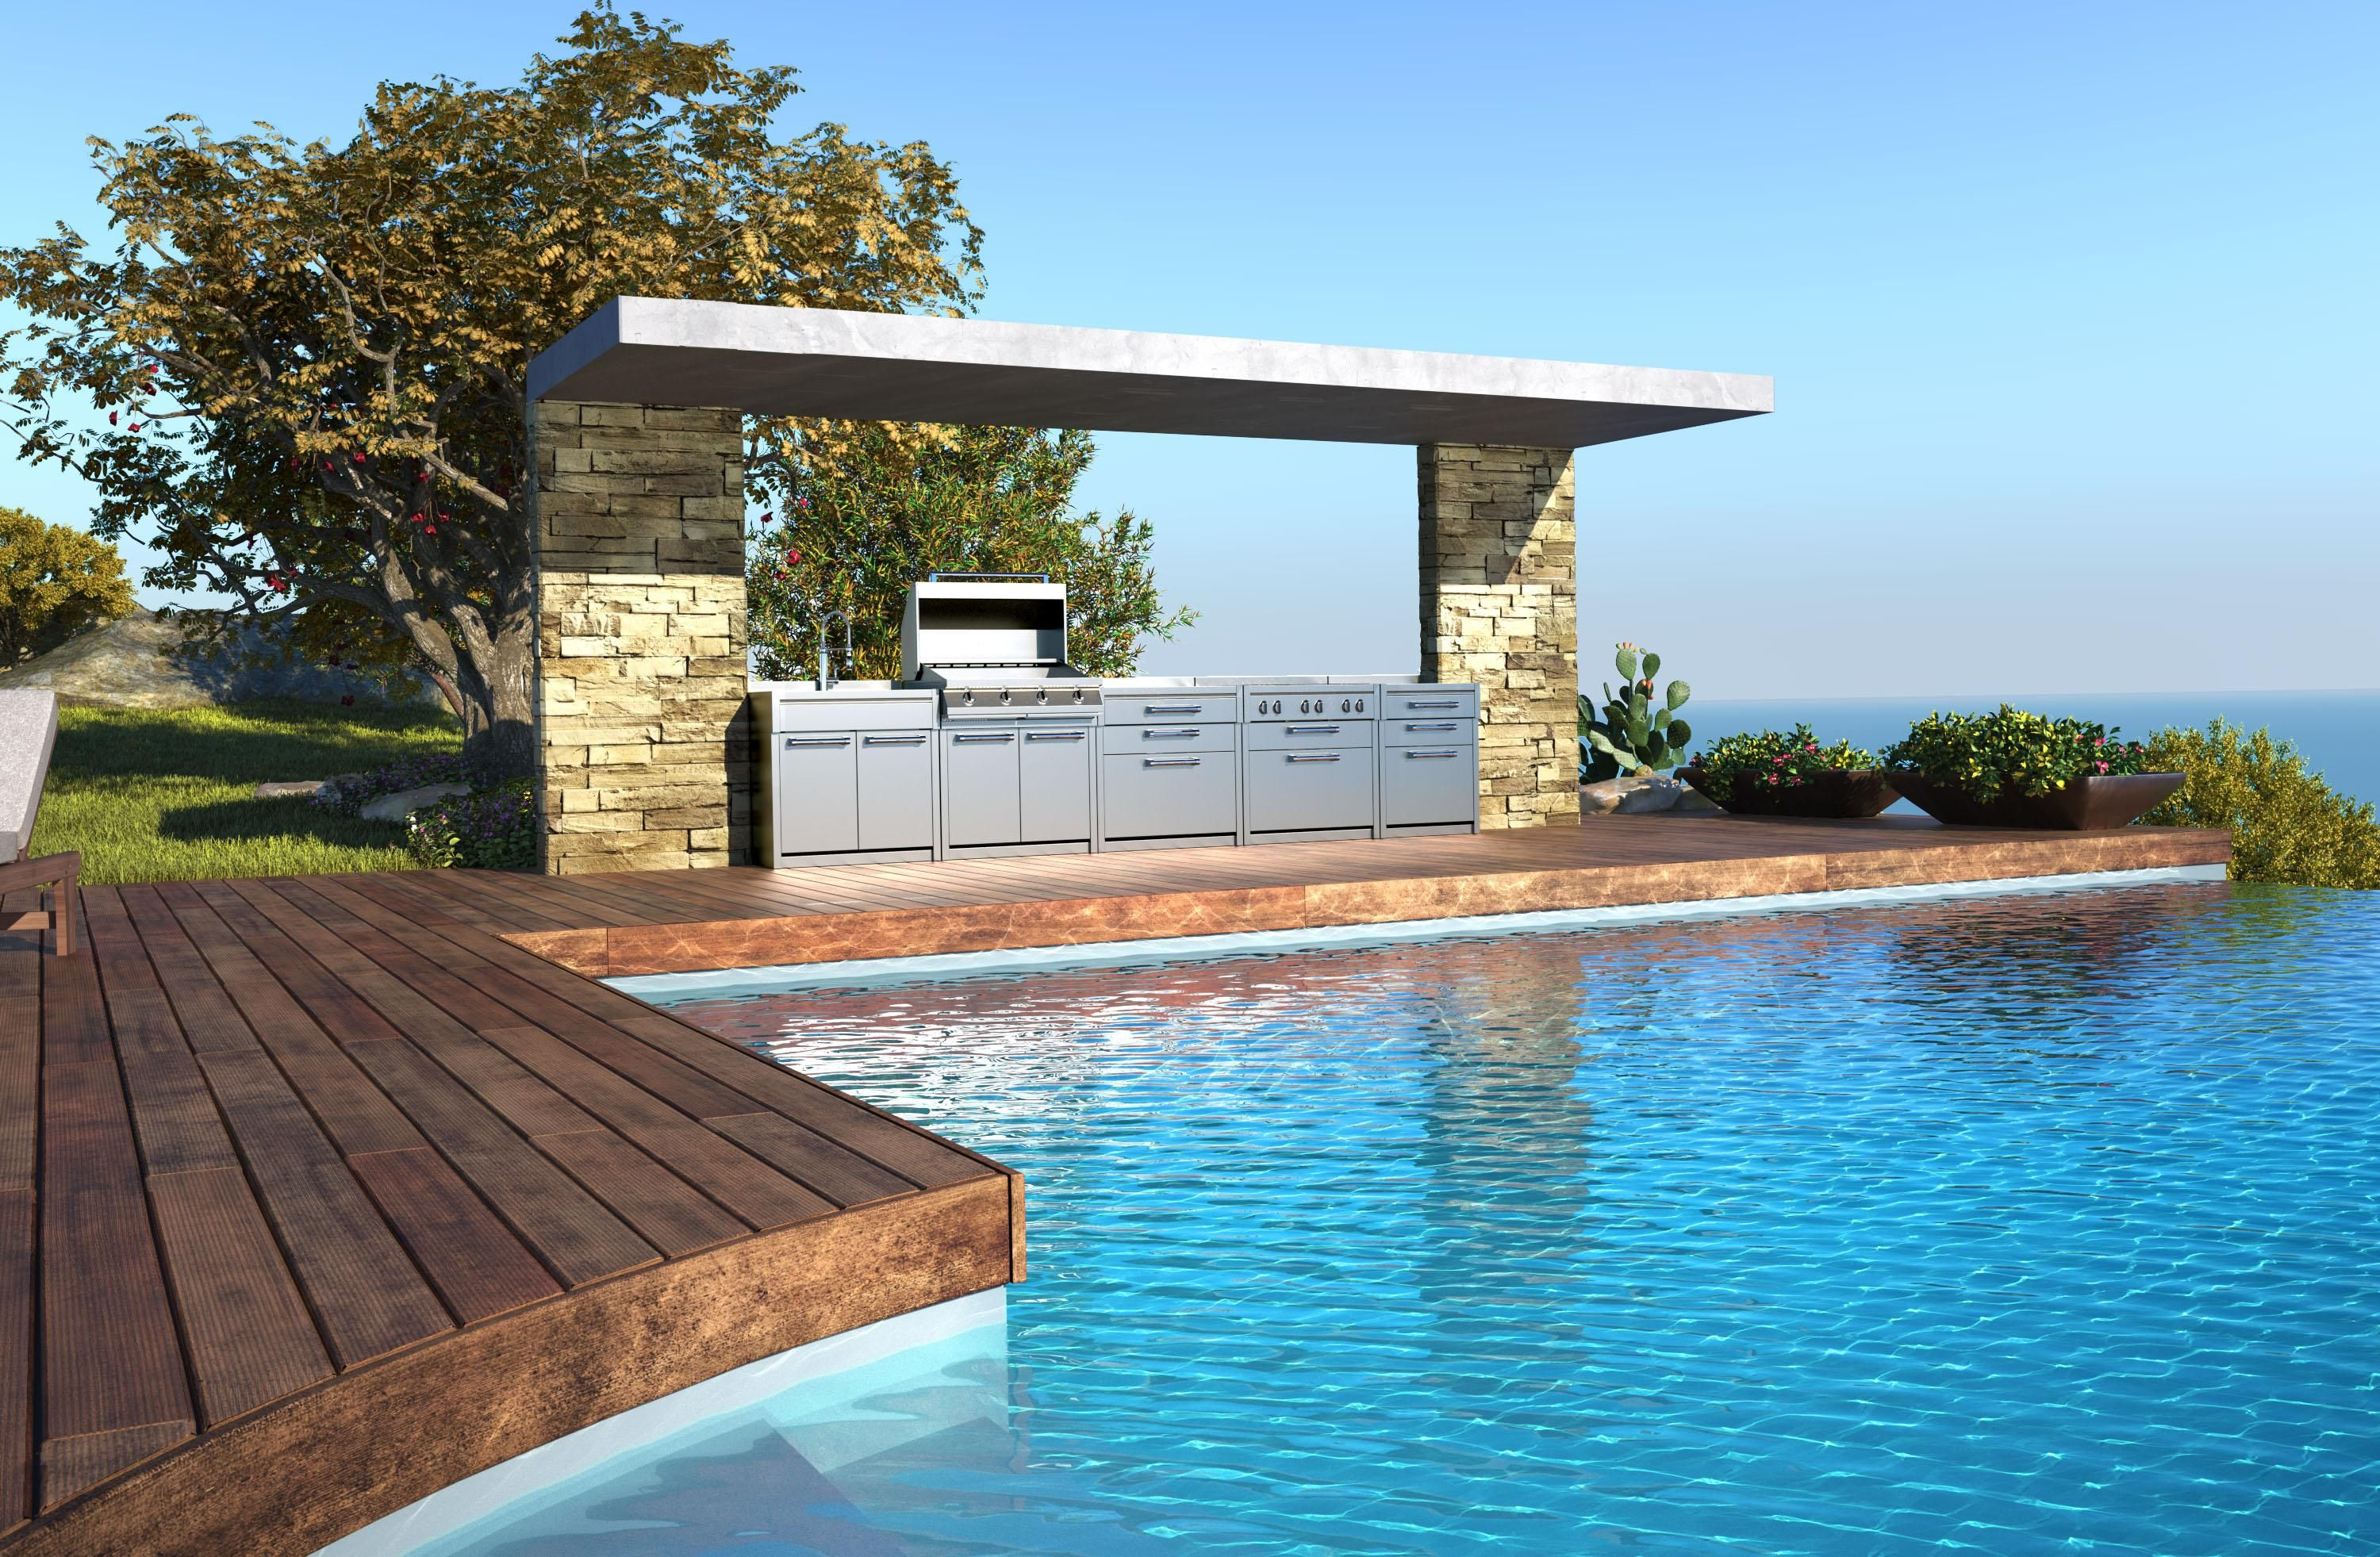 Stunning outdoor Alfresco area - Steel BBQ http://myalfresco.com ...